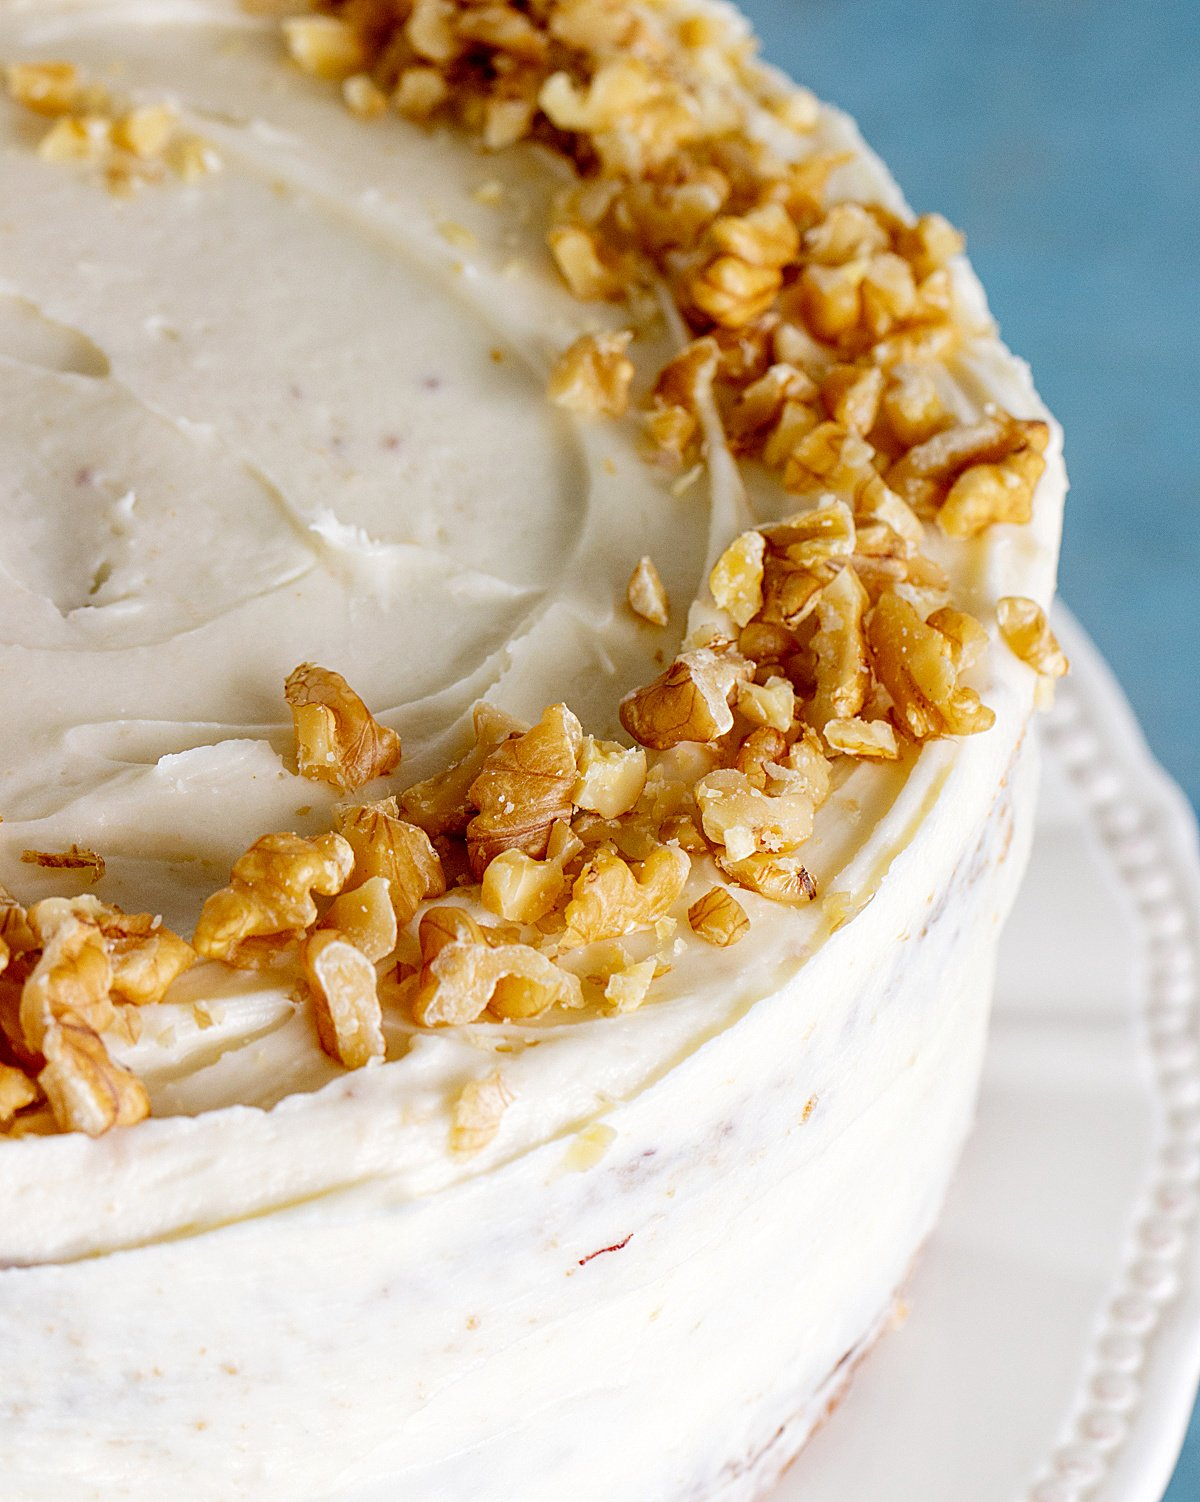 Partial top view of whole frosted cake on a white cake stand with walnuts on top